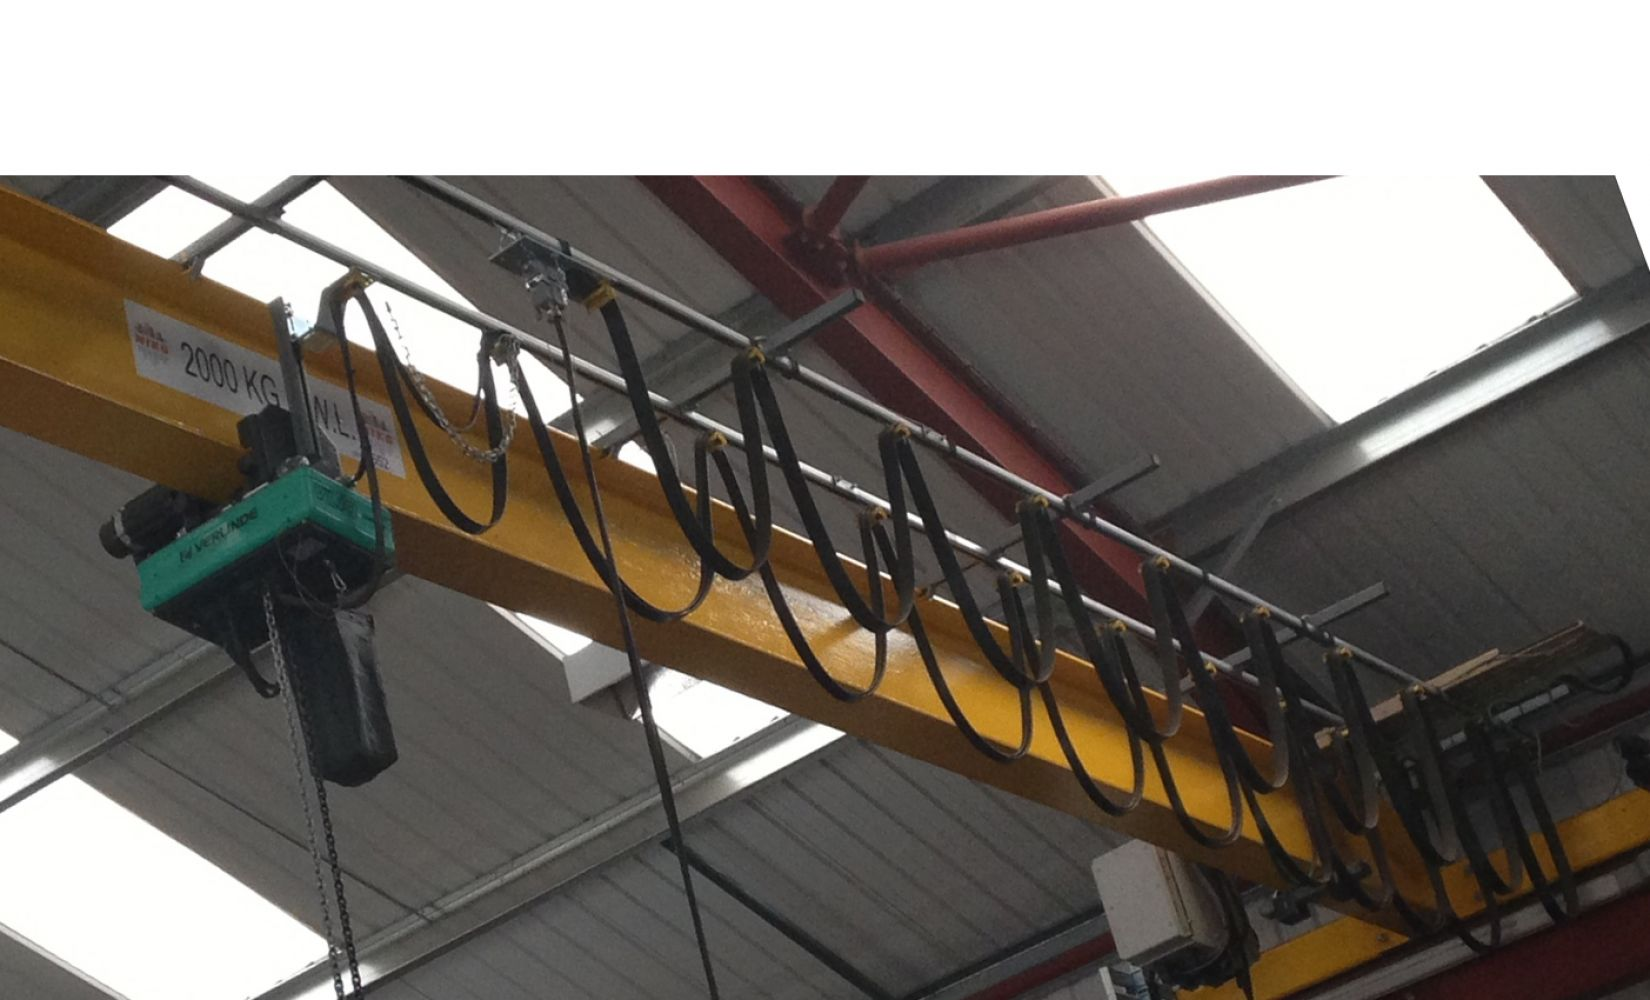 Festoon Cable Trolley, C-track Trolley, Mobile Equipment